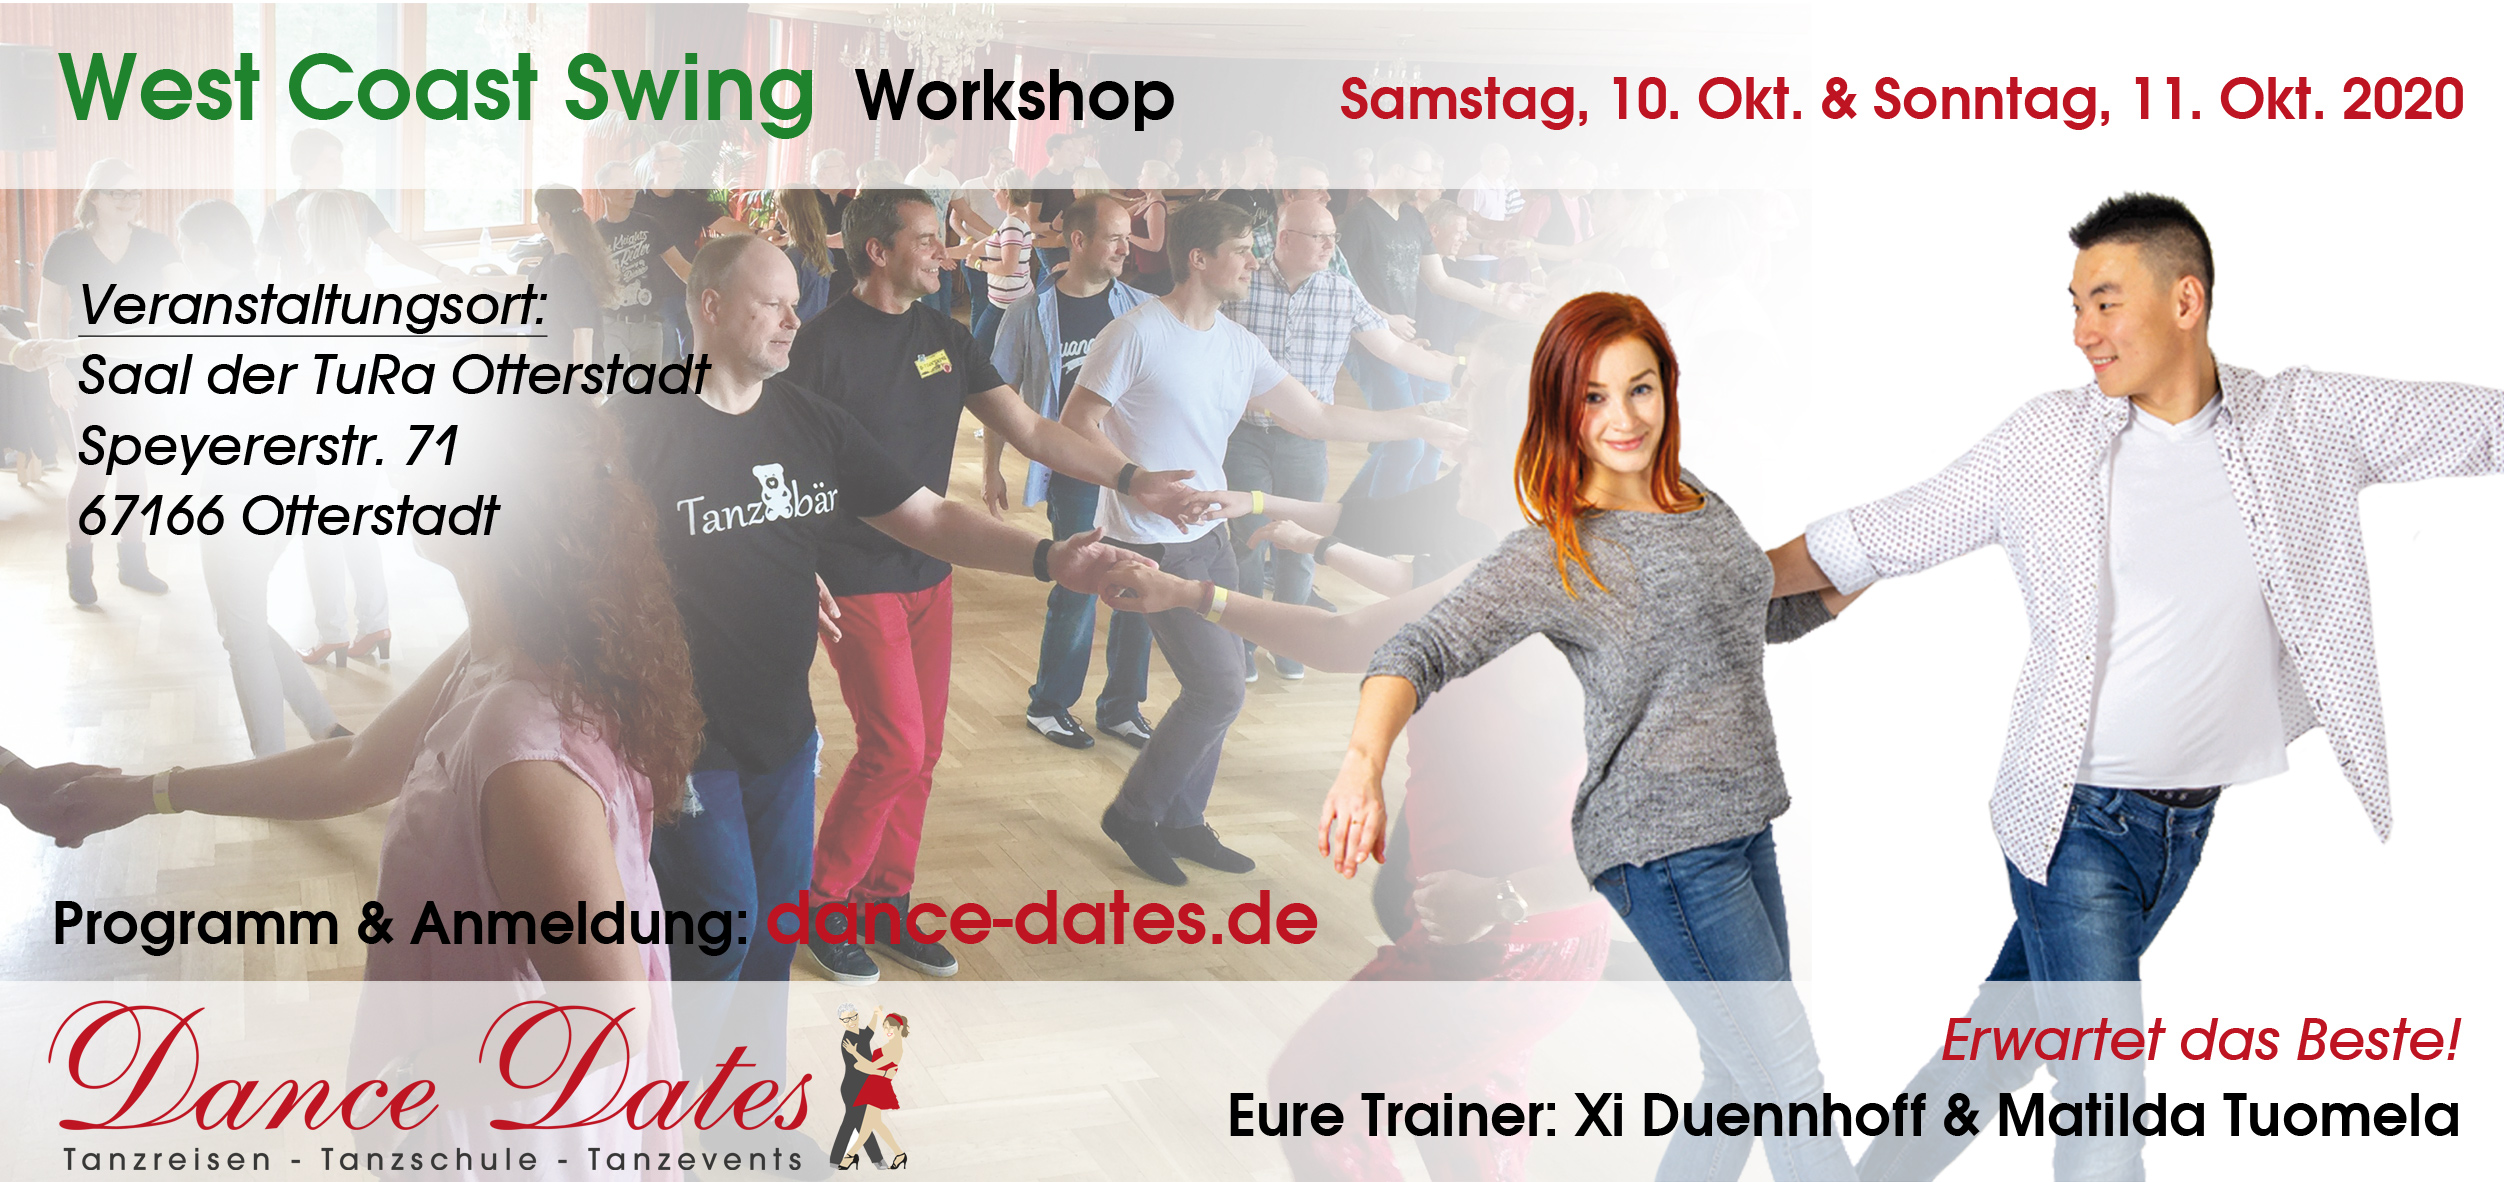 West Coast Swing Workshop Wochenende in Otterstadt